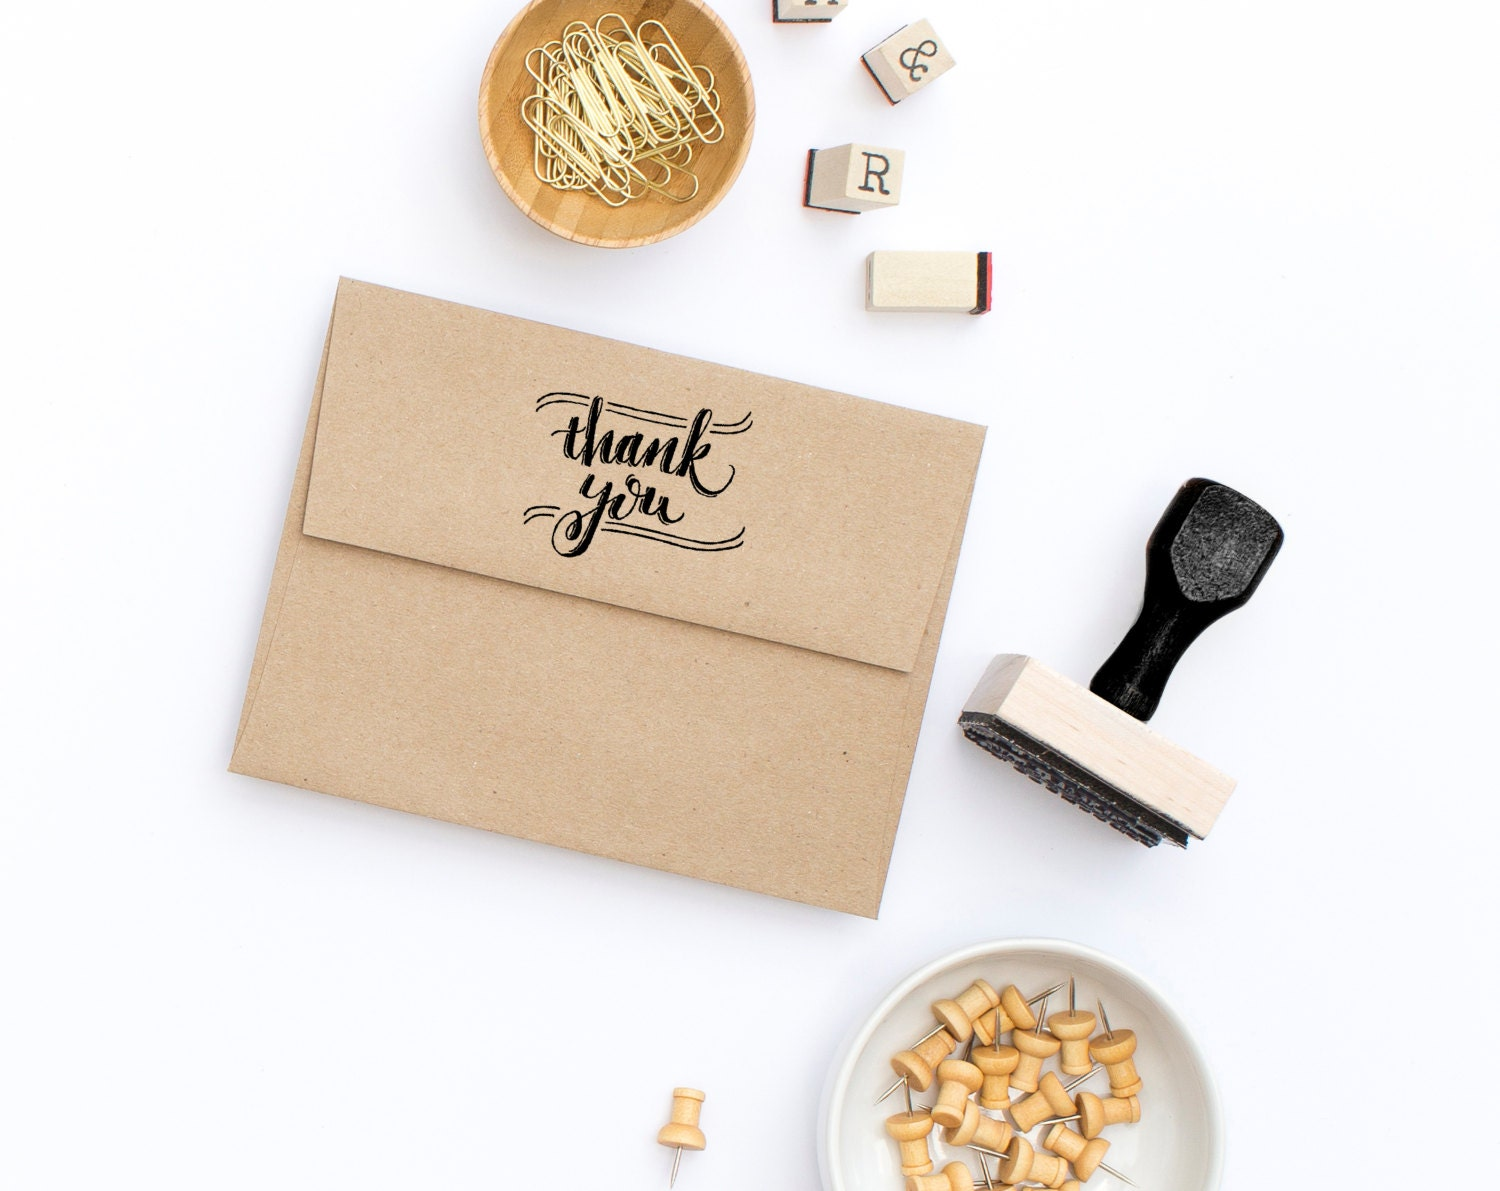 Thank You Stamp Rubber Stamp Calligraphy Stamp Hand